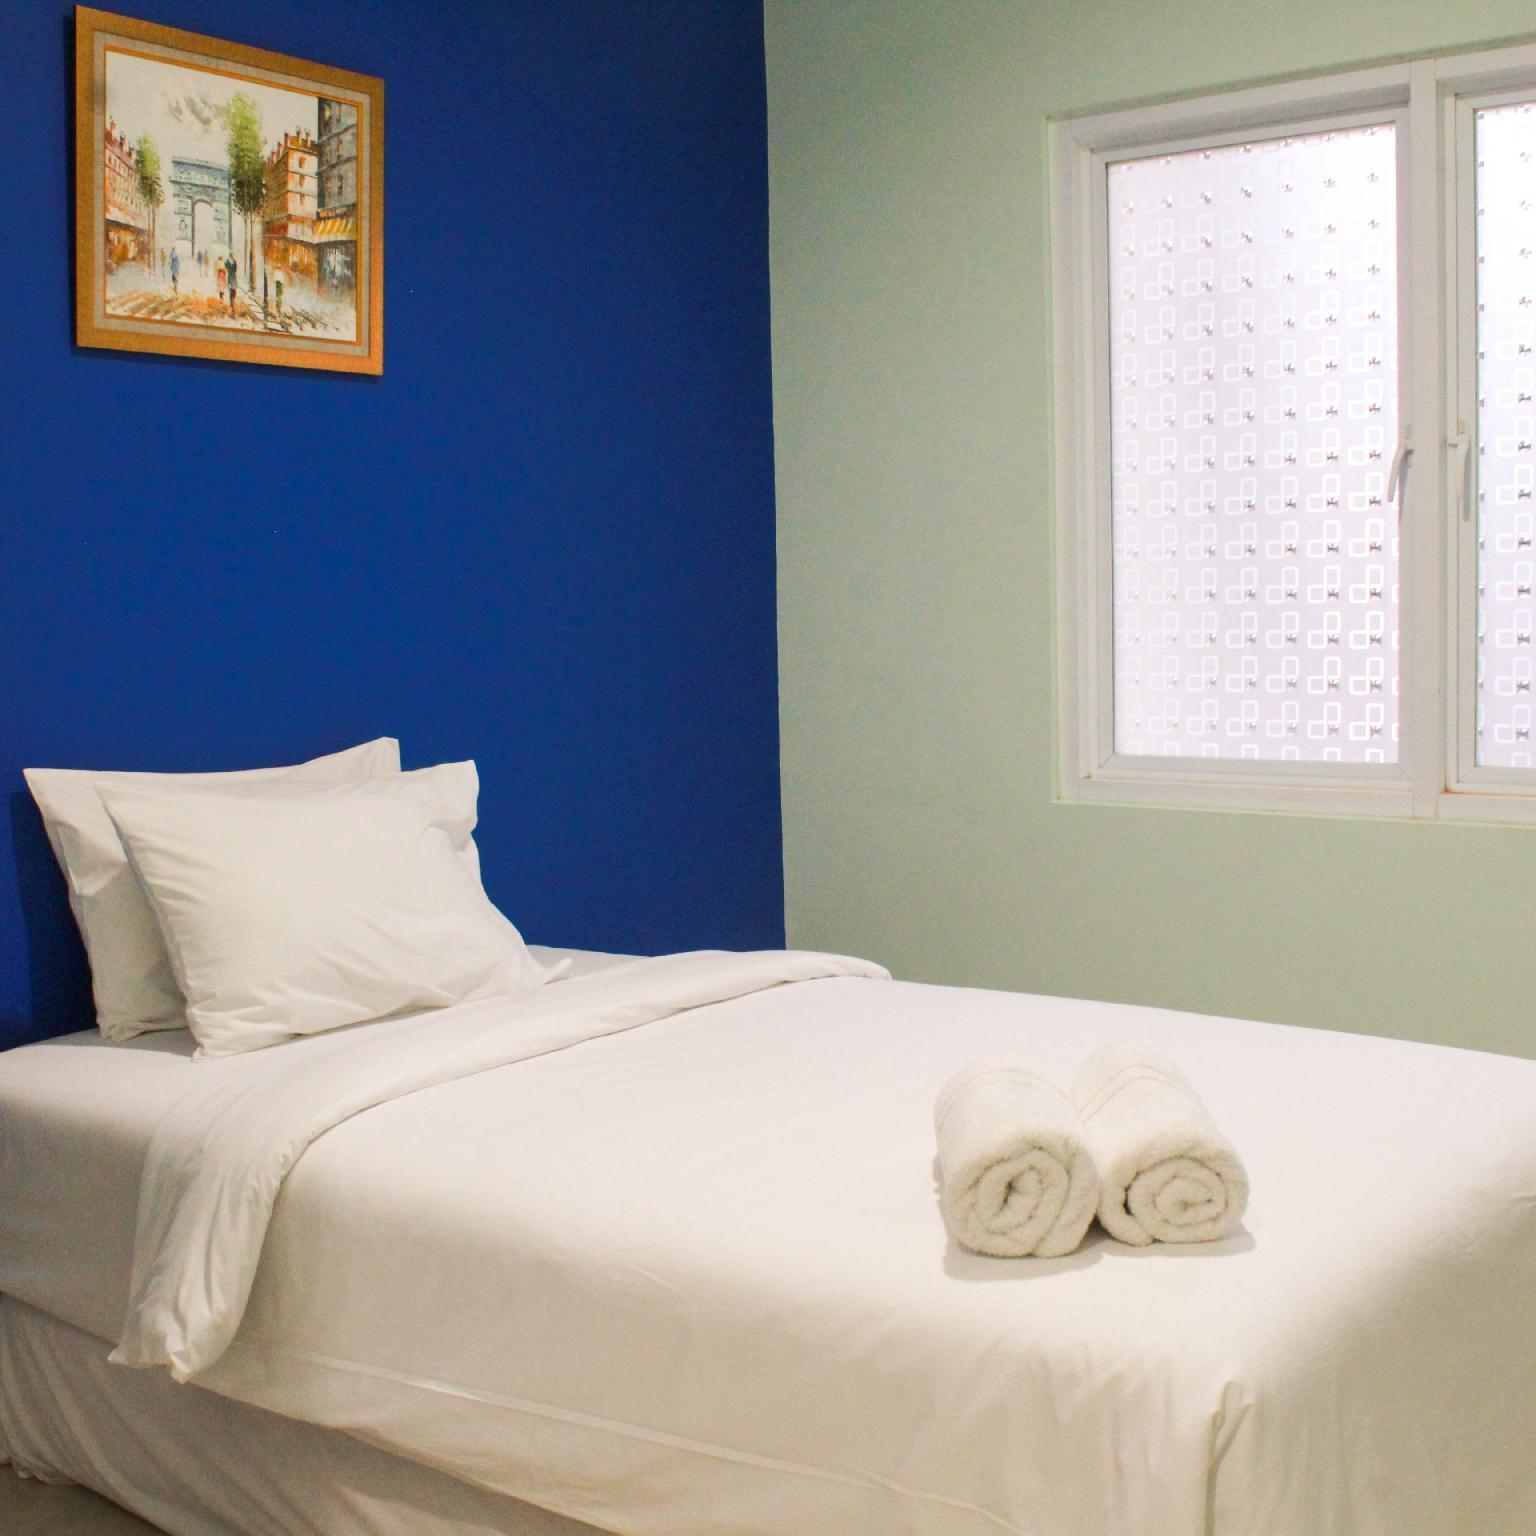 Homey Studio Guesthouse Near Mall By Travelio